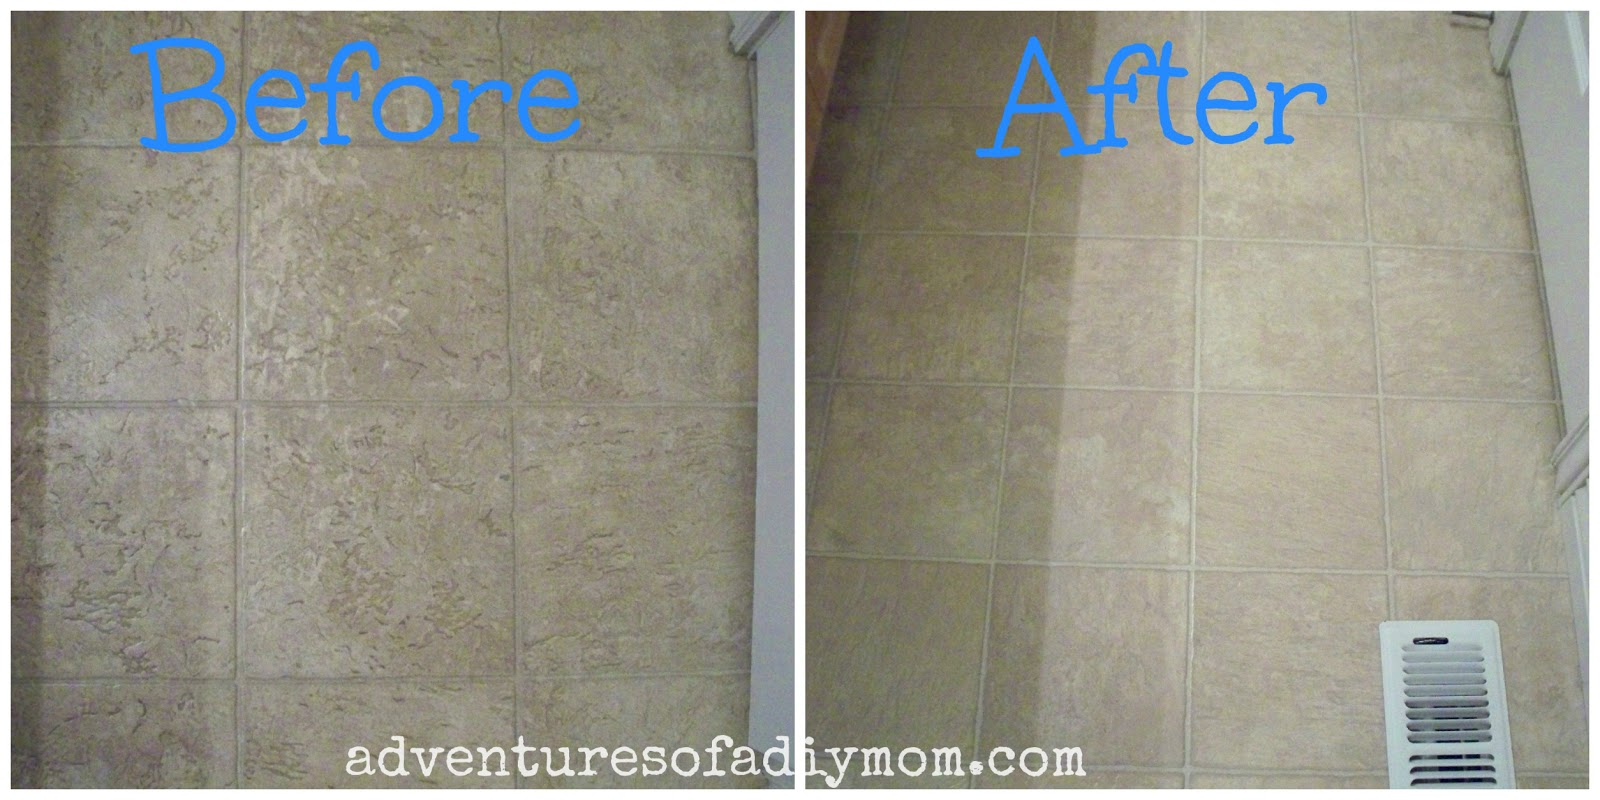 How to remove hairspray residue from floor adventures of a diy mom how to remove hairspray residue from floor doublecrazyfo Choice Image